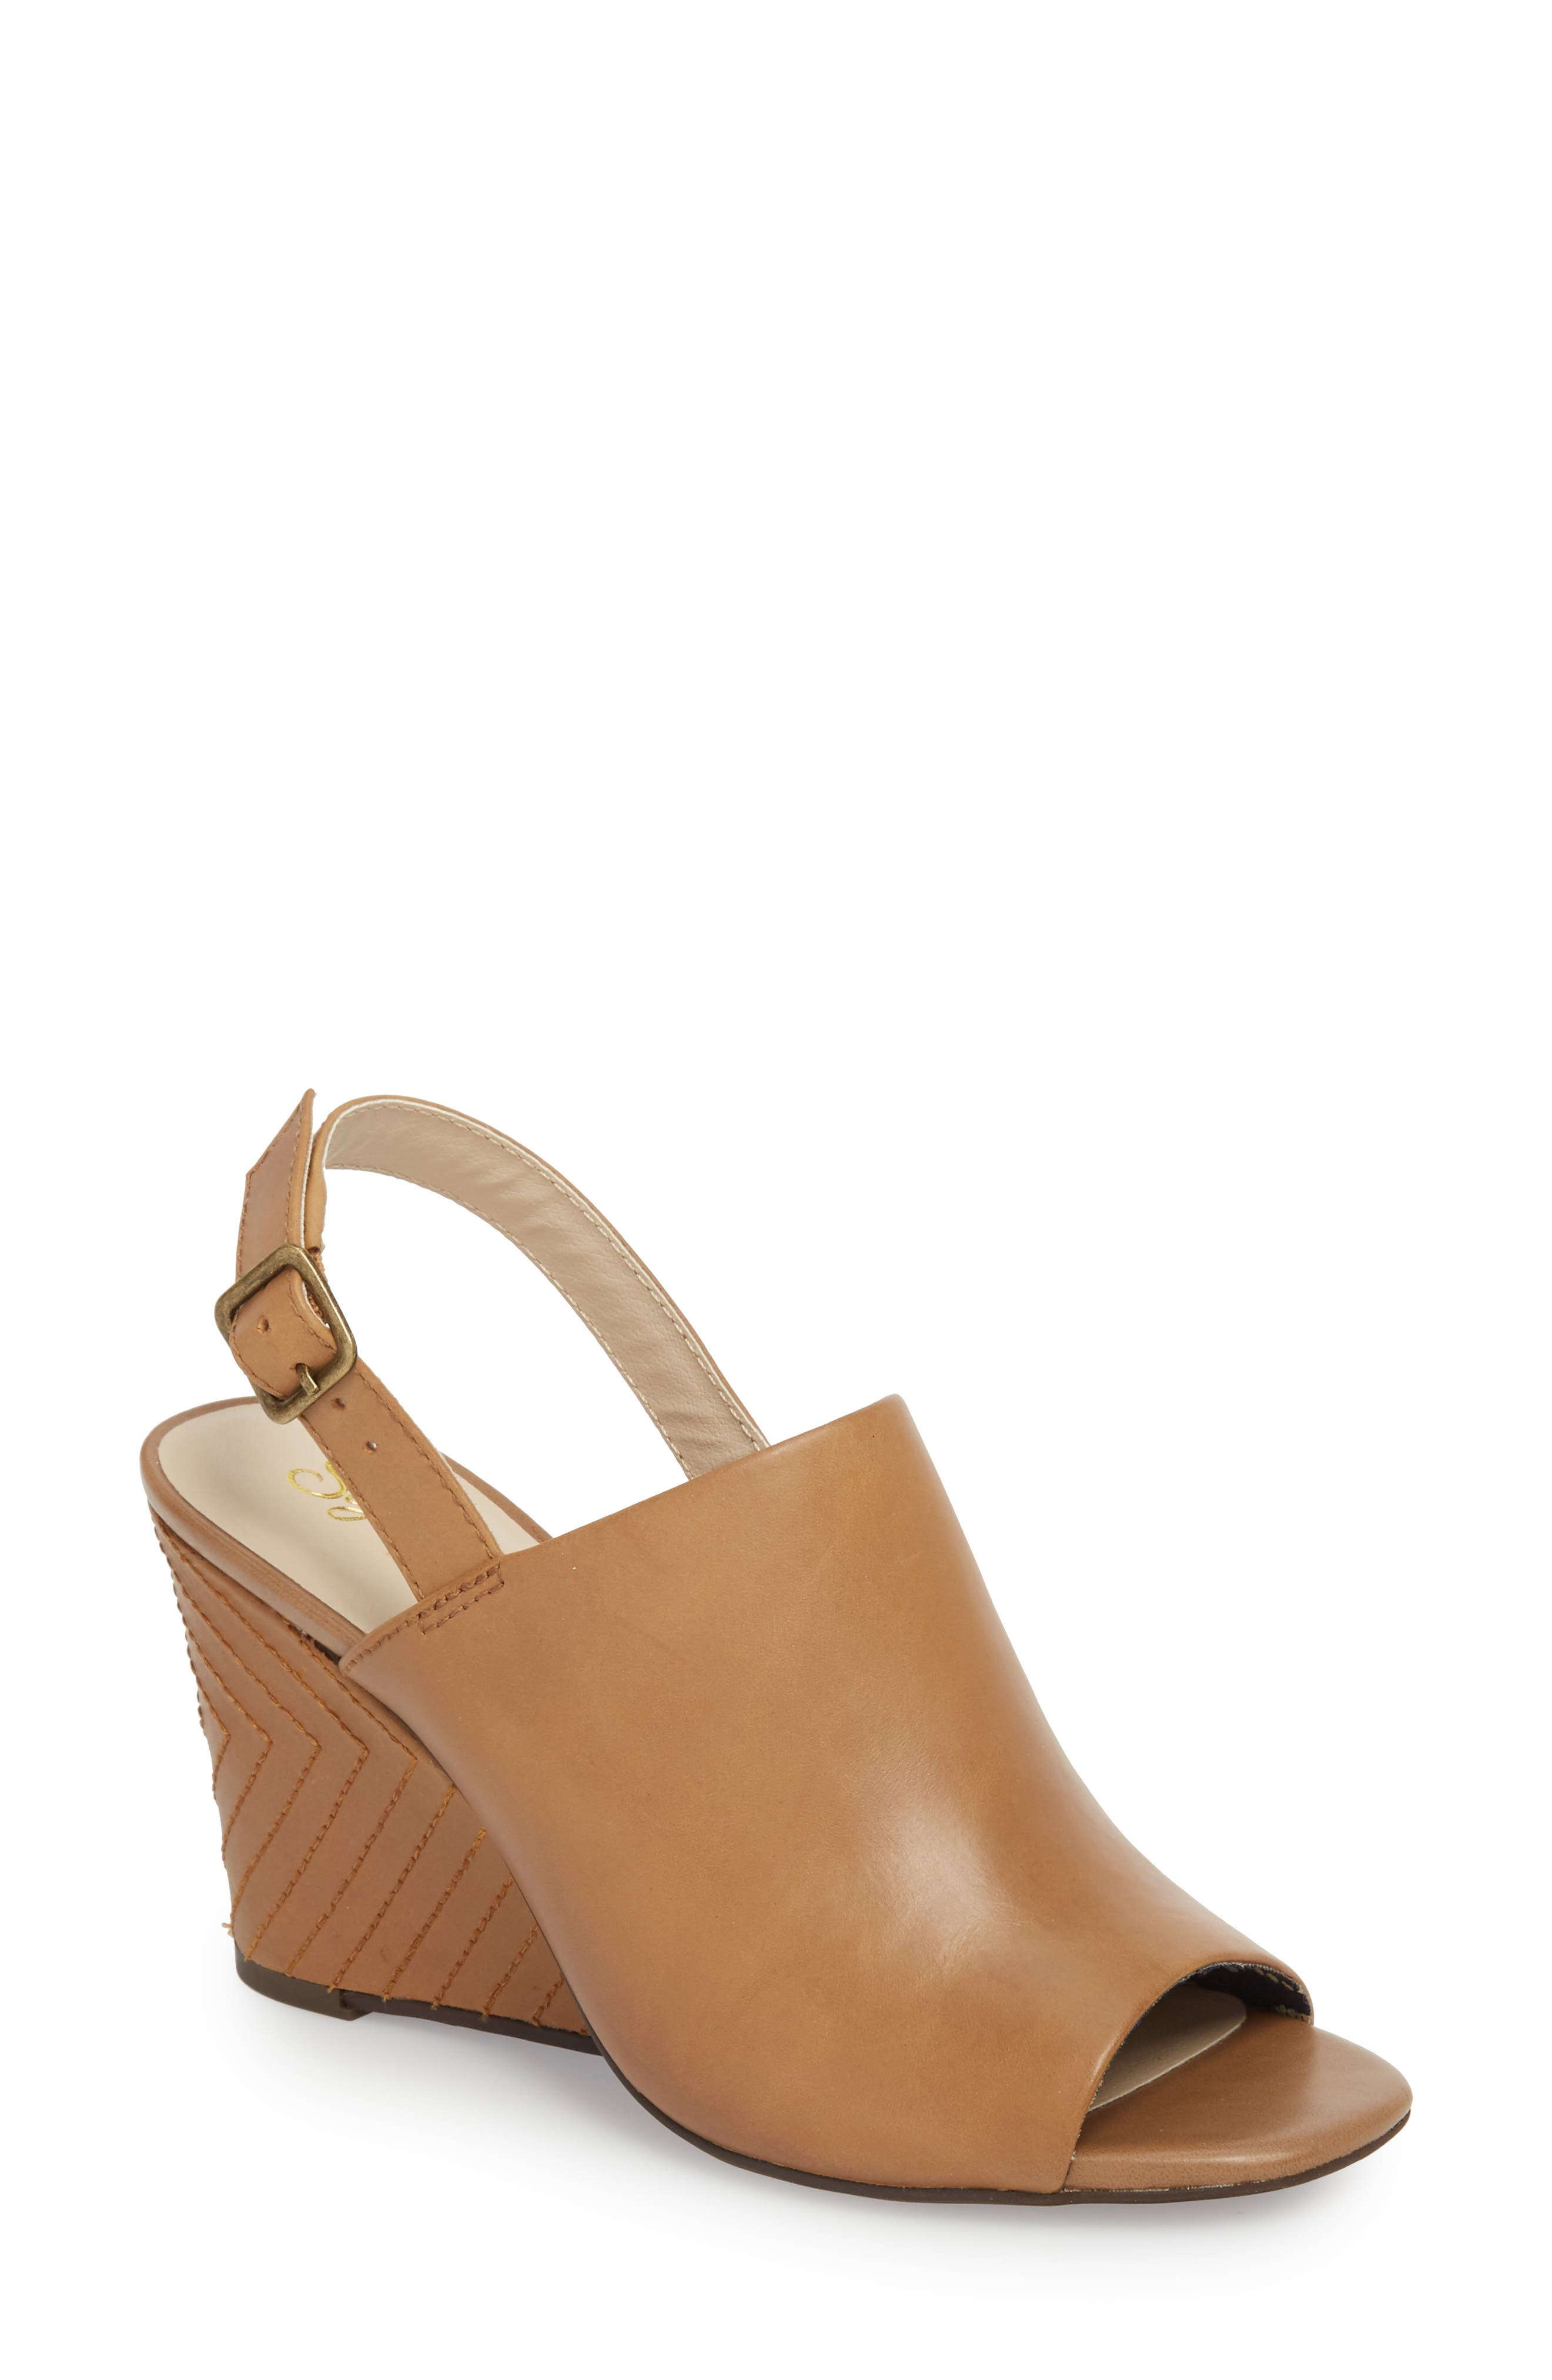 Abyssal Wedge Sandal,                         Main,                         color, TAN LEATHER